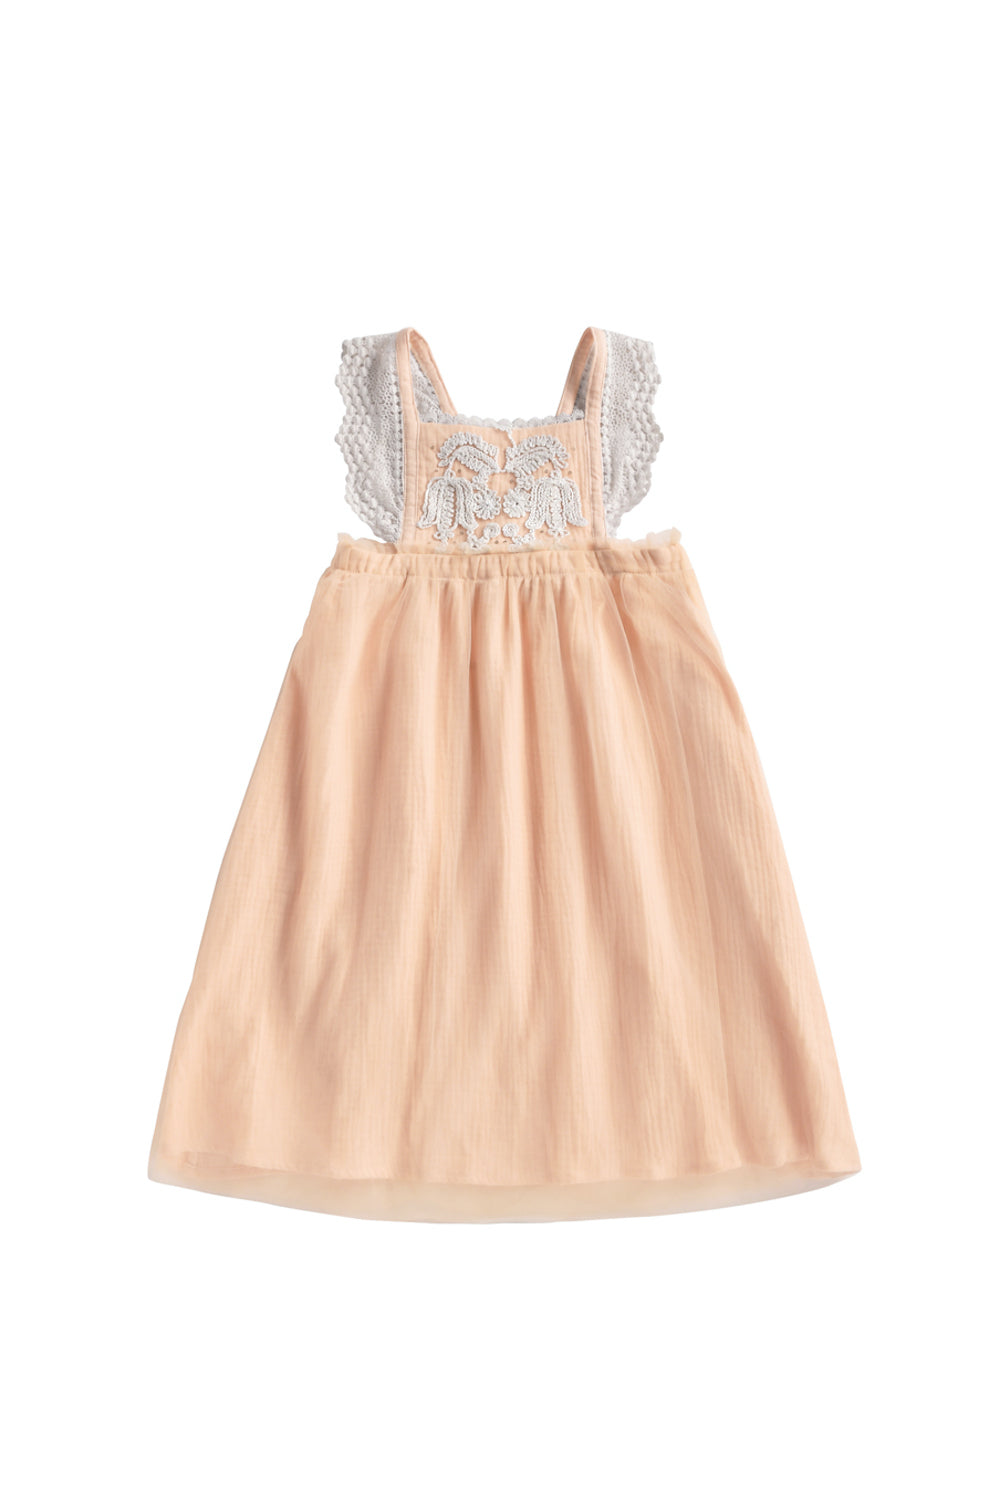 Louise Misha Loukia Dress - Blush